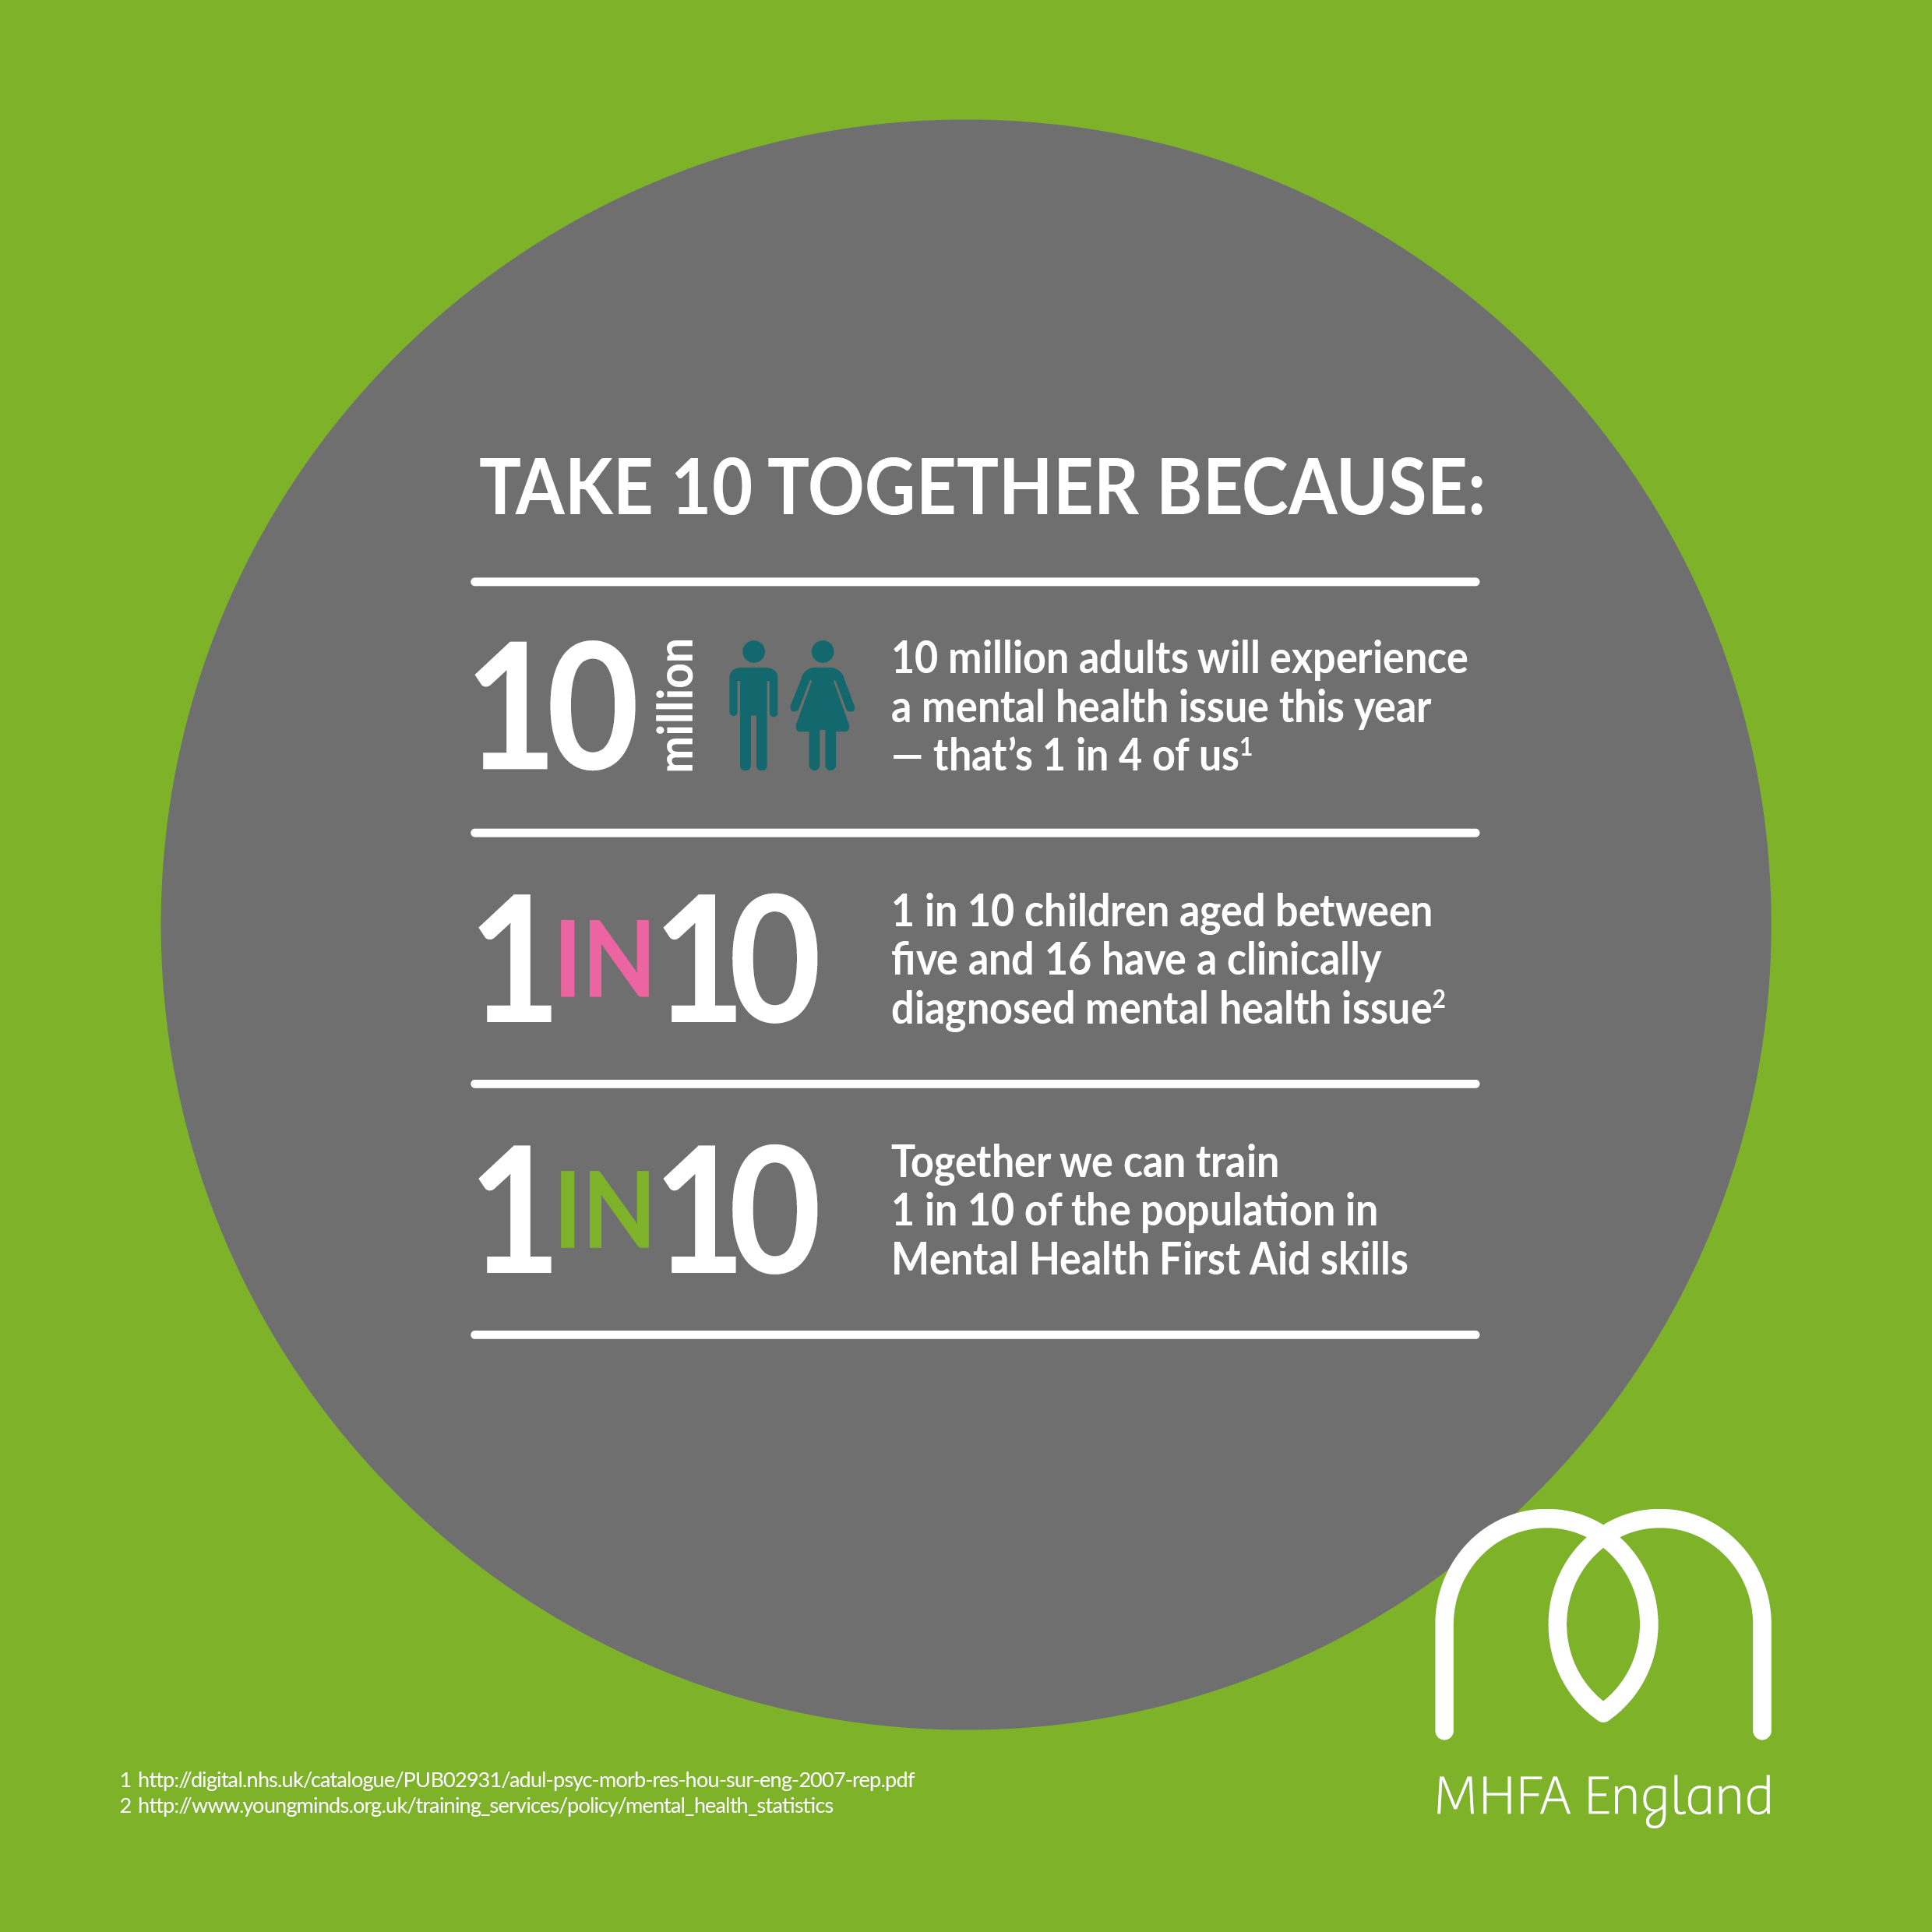 A round up of the MHFA England Take 10 Together campaign ...